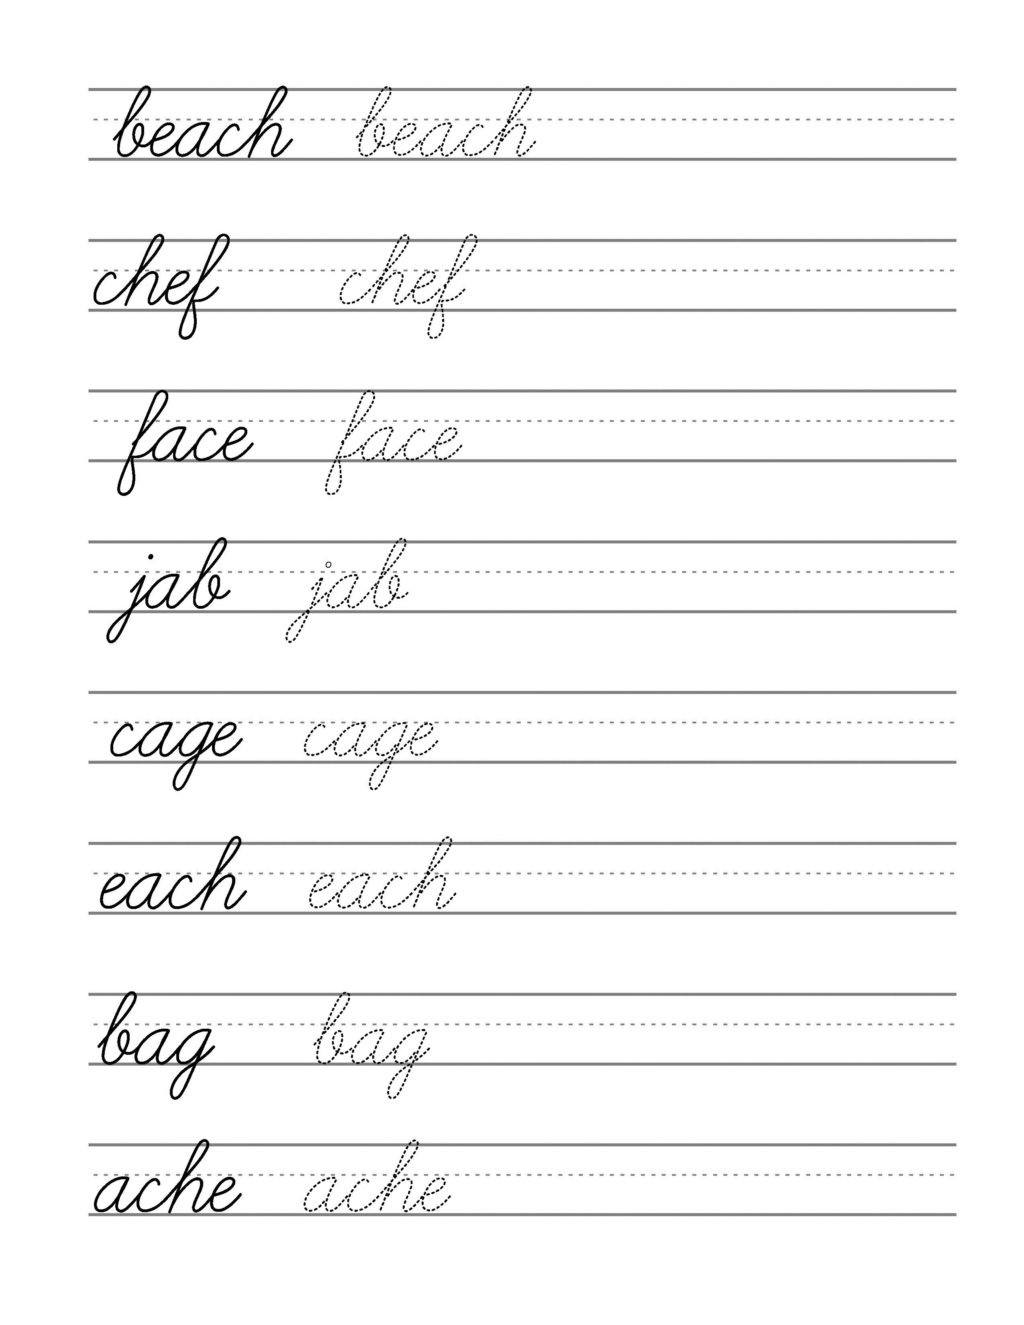 awesome handwriting booklet photo ideas free paper kindergarten practice for second grade pdf name my 1024x1325